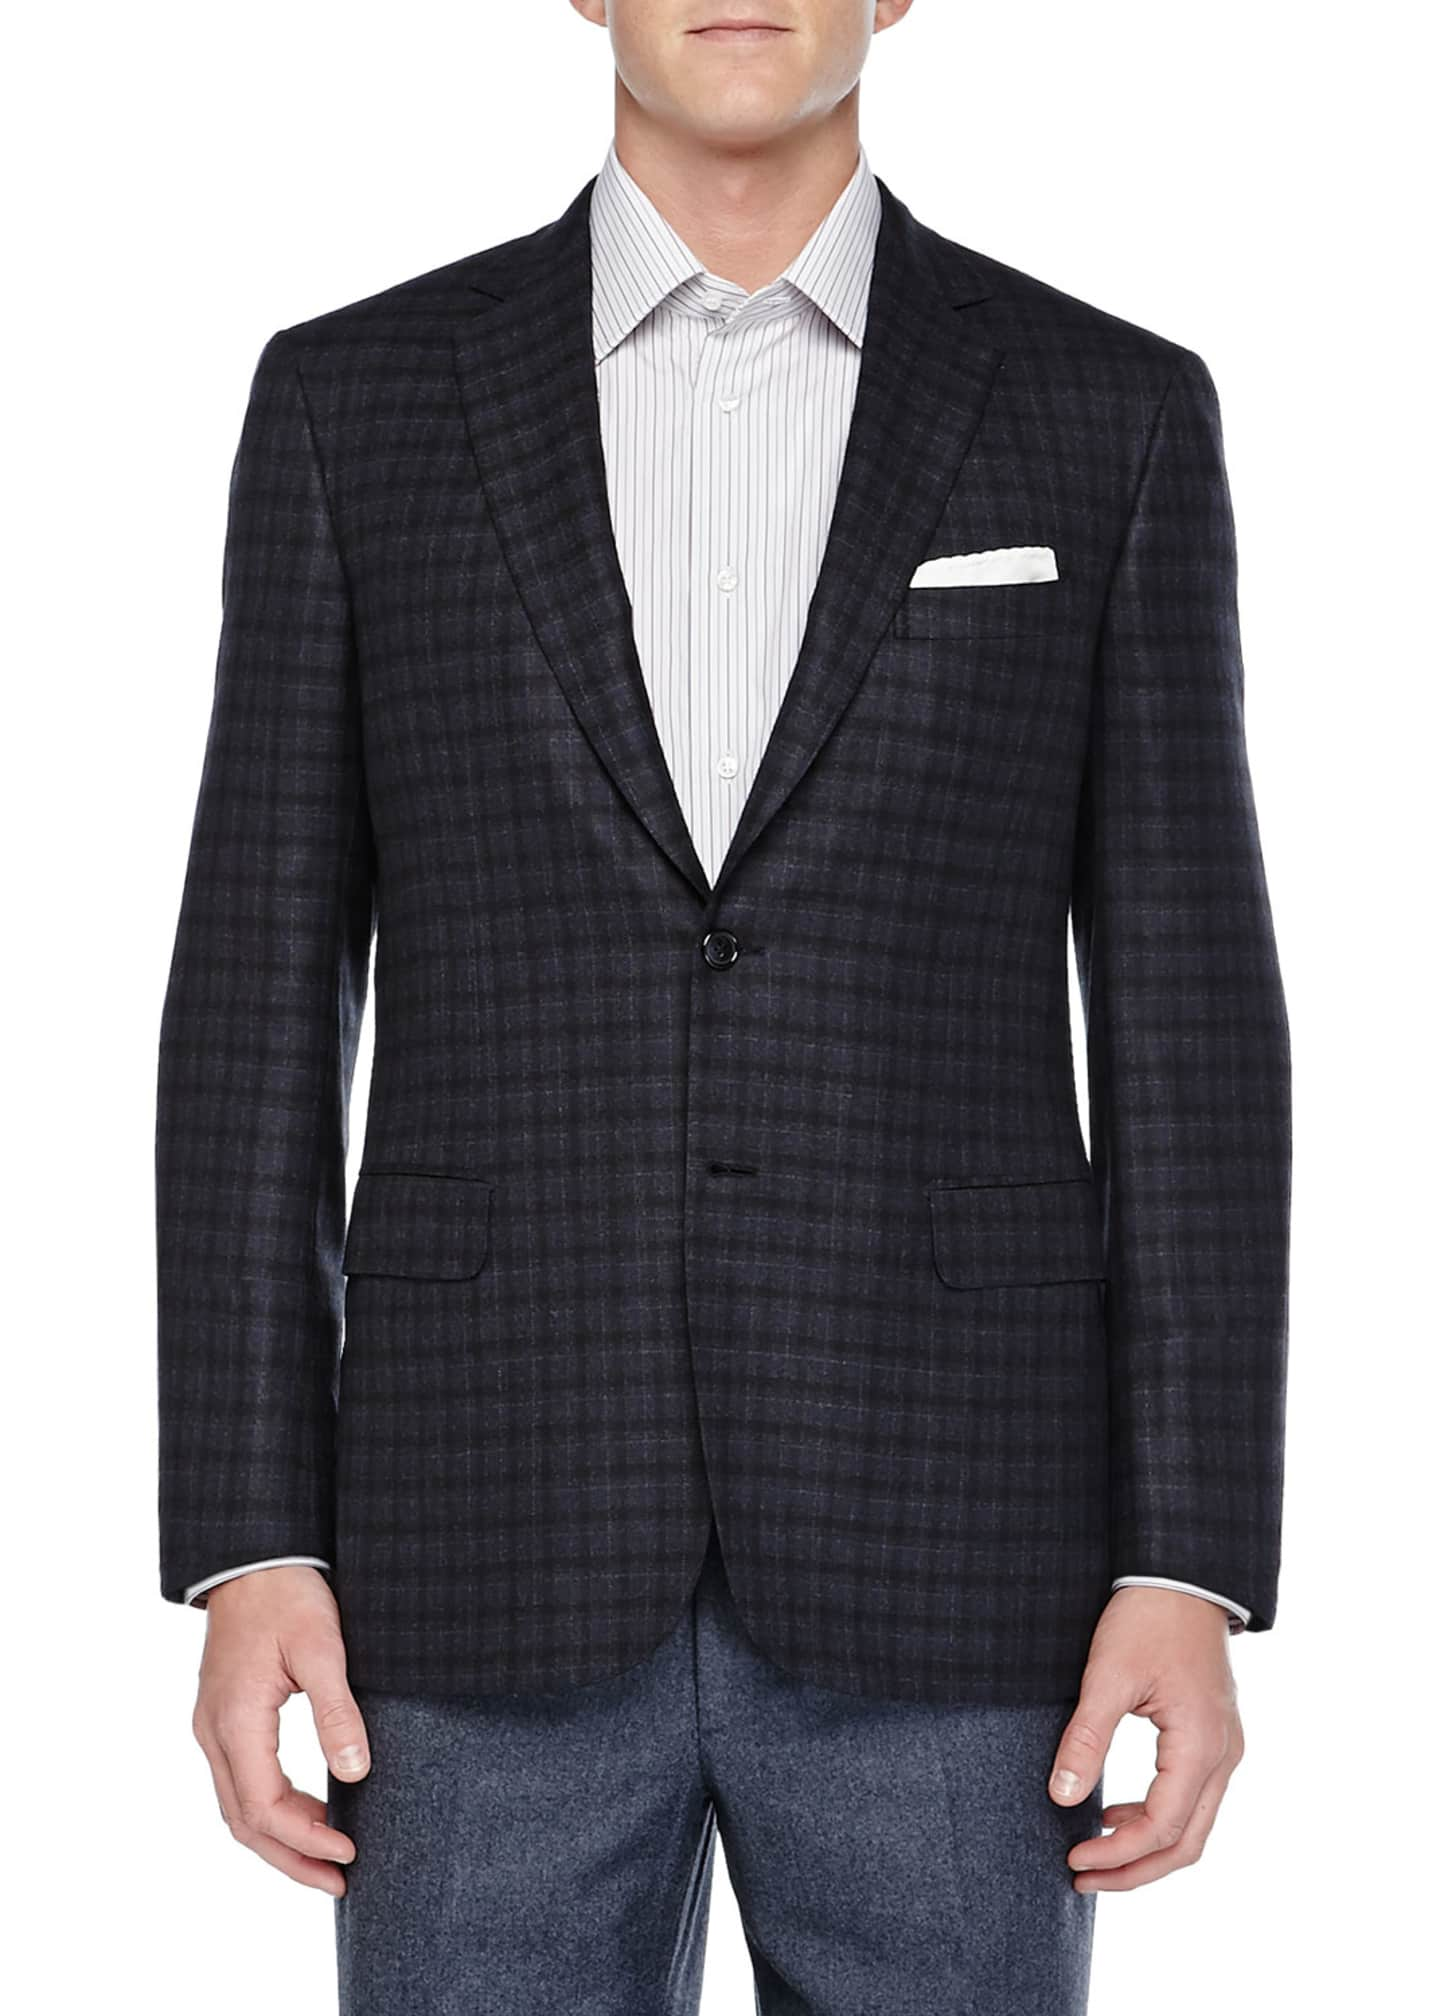 Brioni Check Two-Button Jacket, Charcoal/Navy